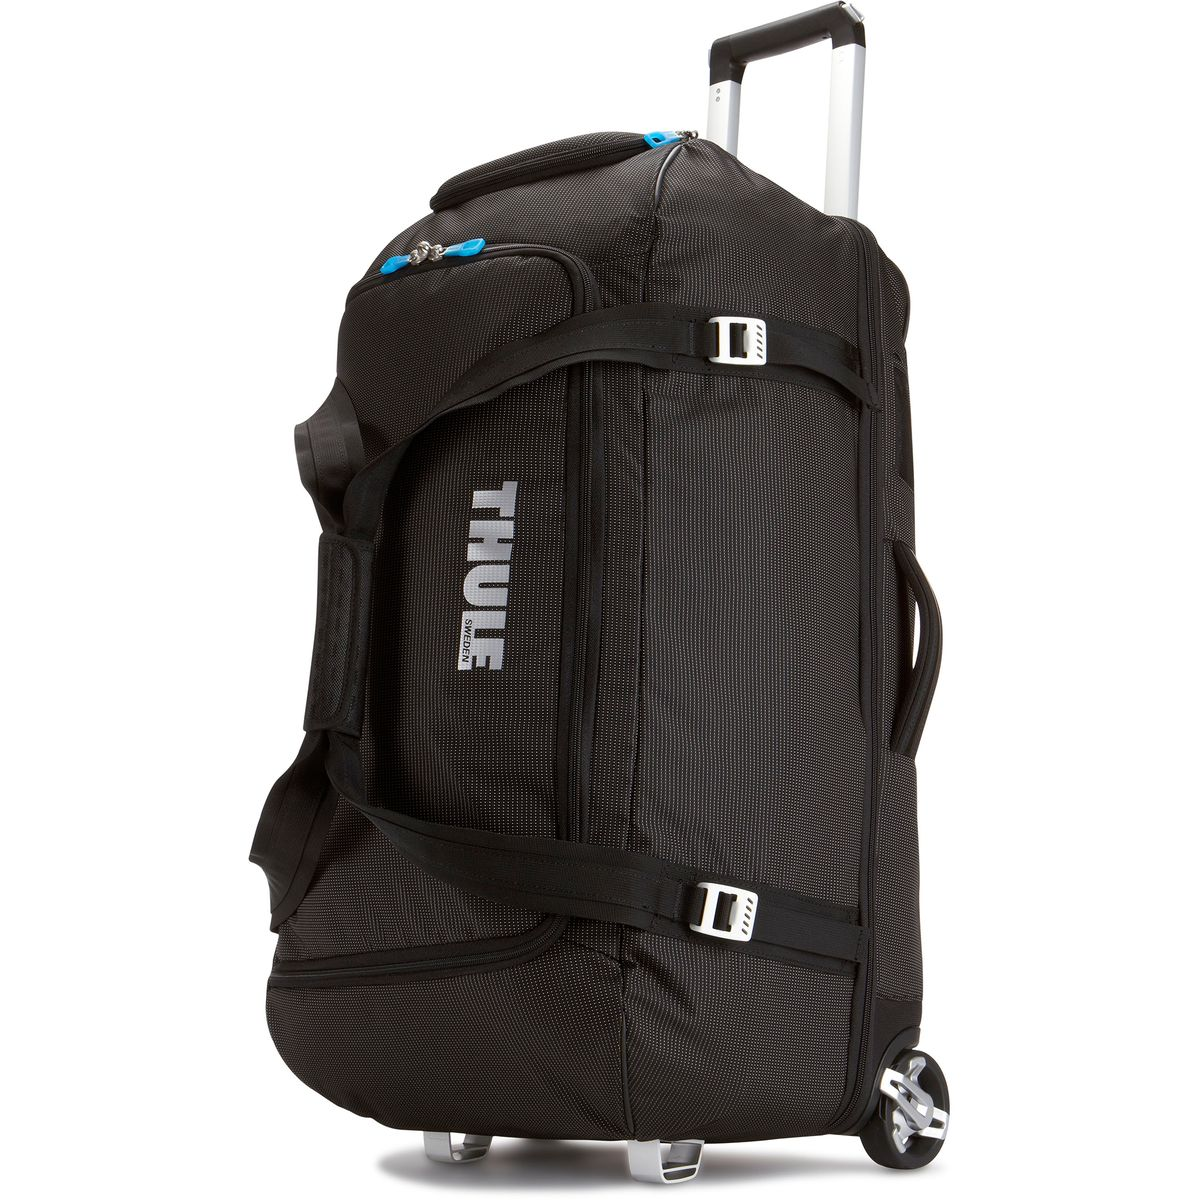 364afd17a ... Crossover 87L Rolling Duffel travel bag. You have already used the  configurator. To see your configuration click here.